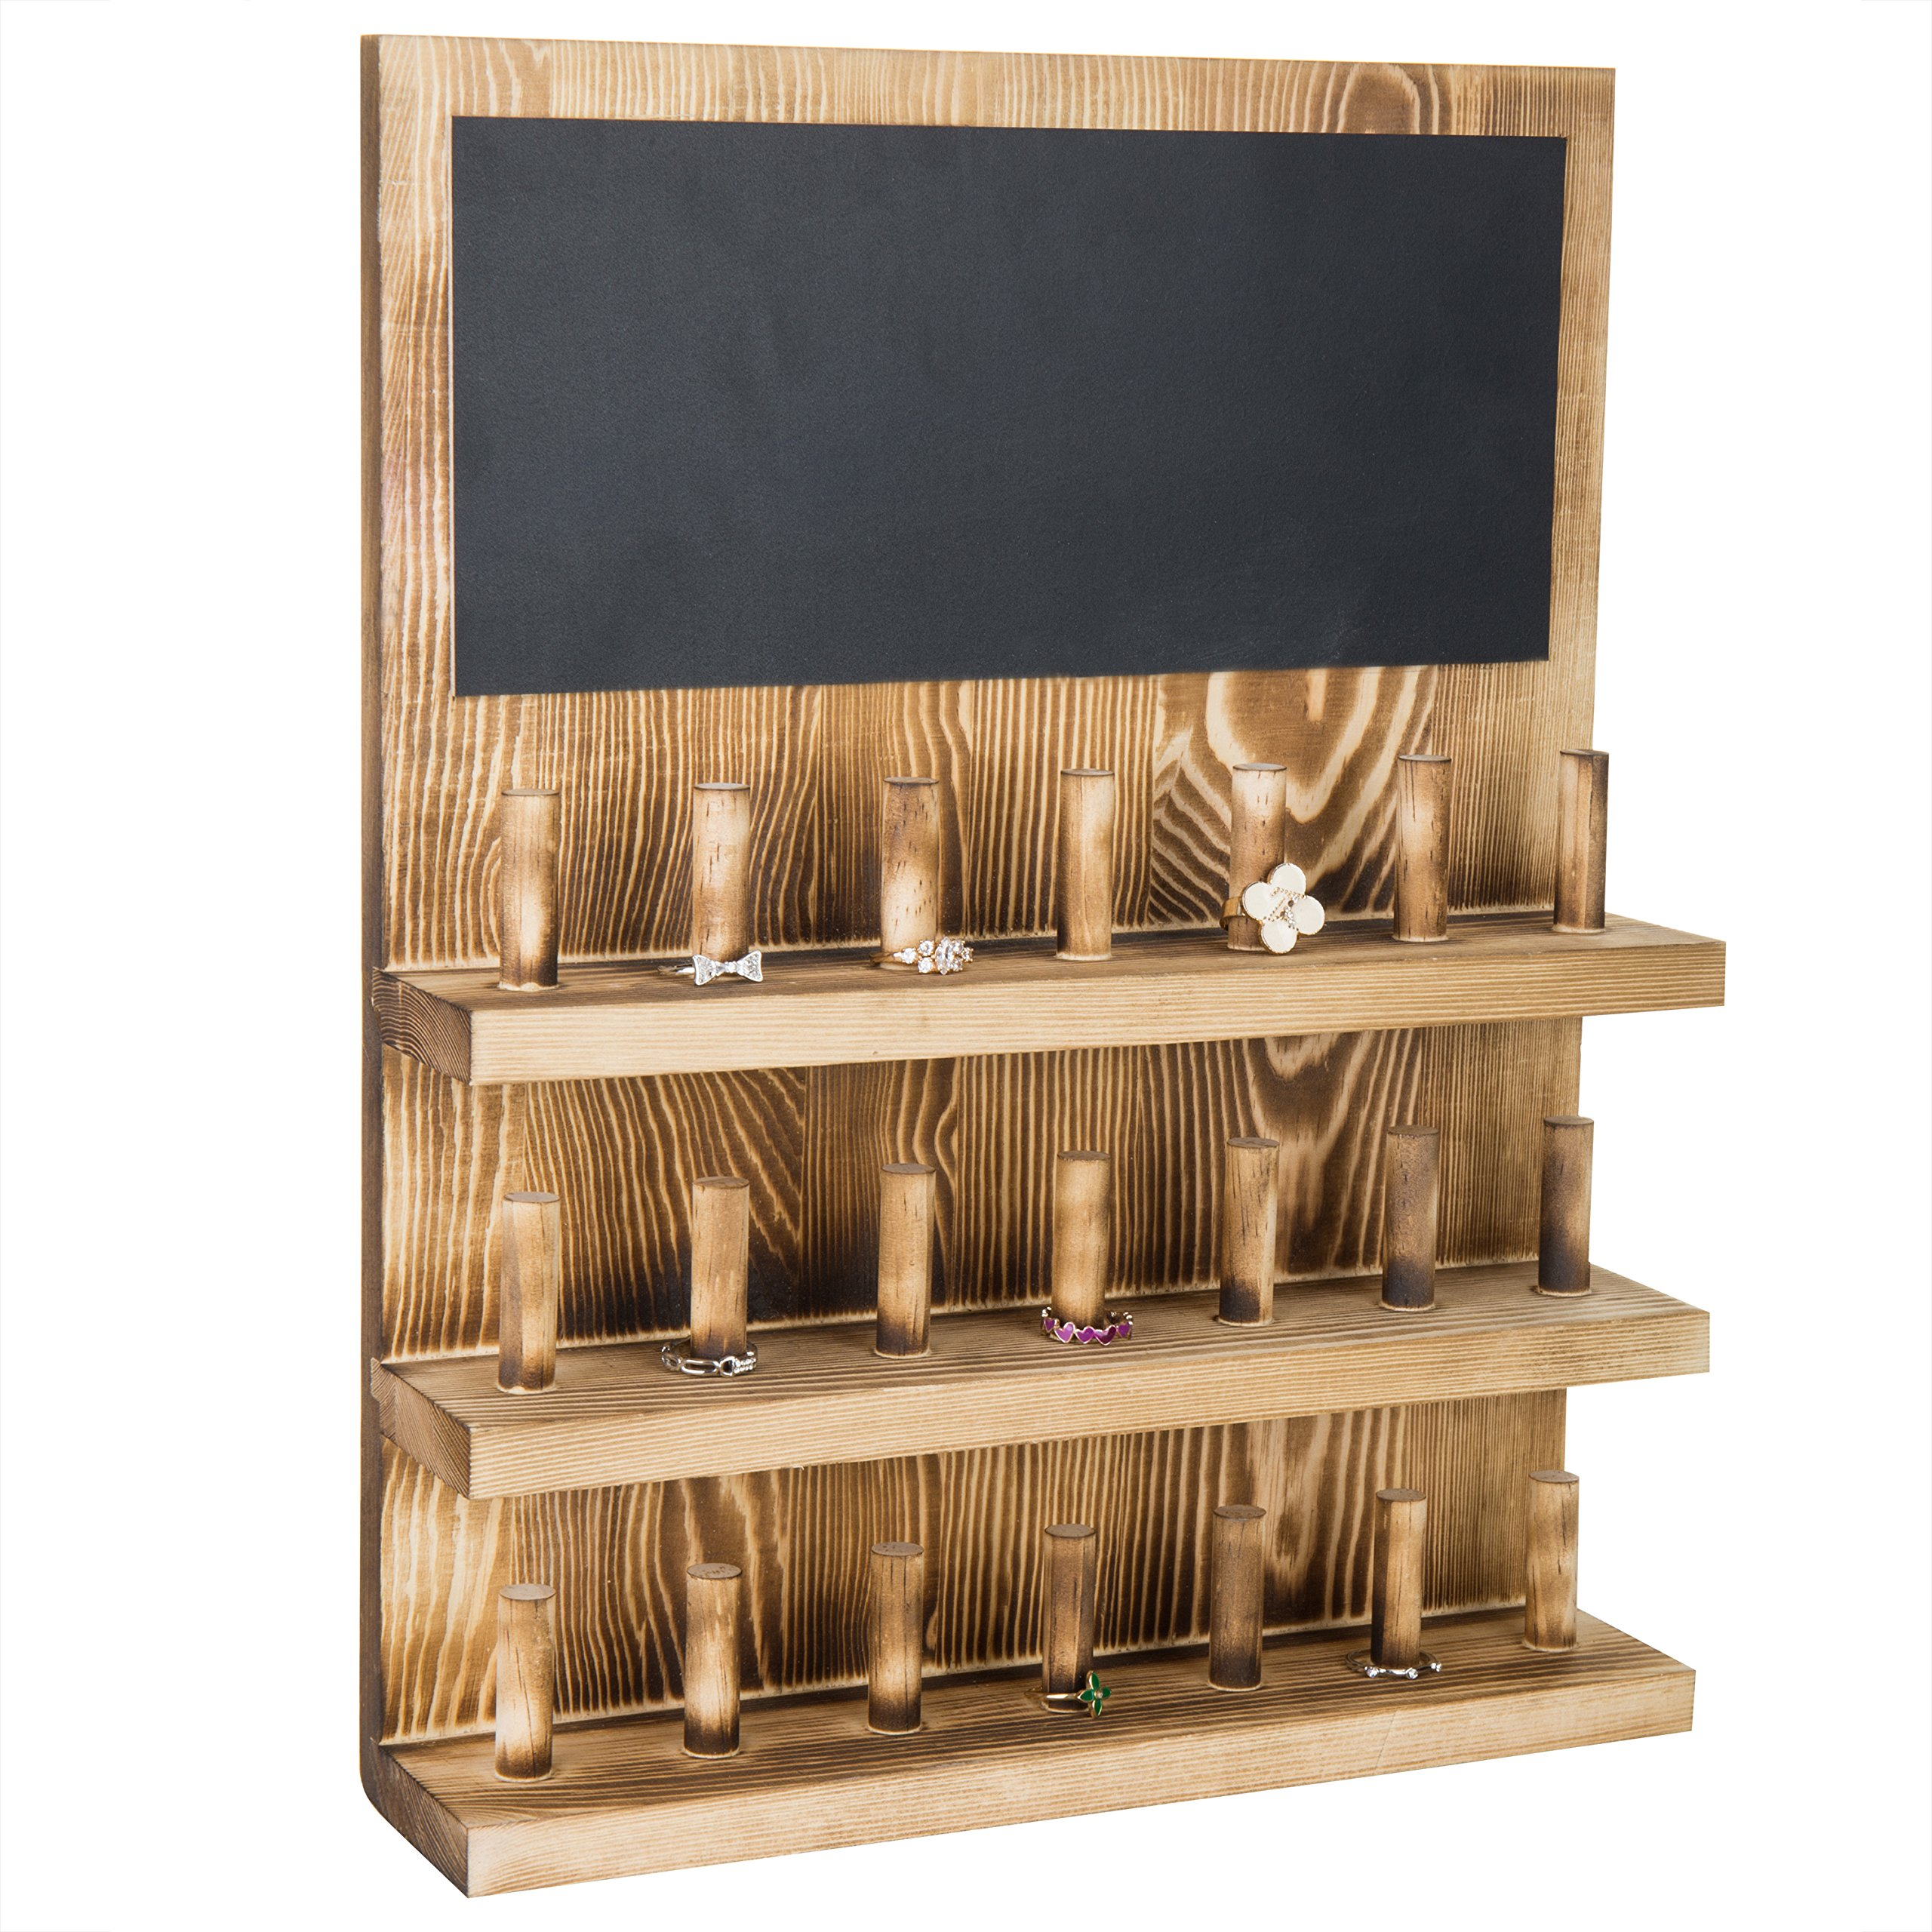 MyGift 3-Tier Wall-Mounted Wood Ring Display Rack with Chalkboard by MyGift (Image #1)